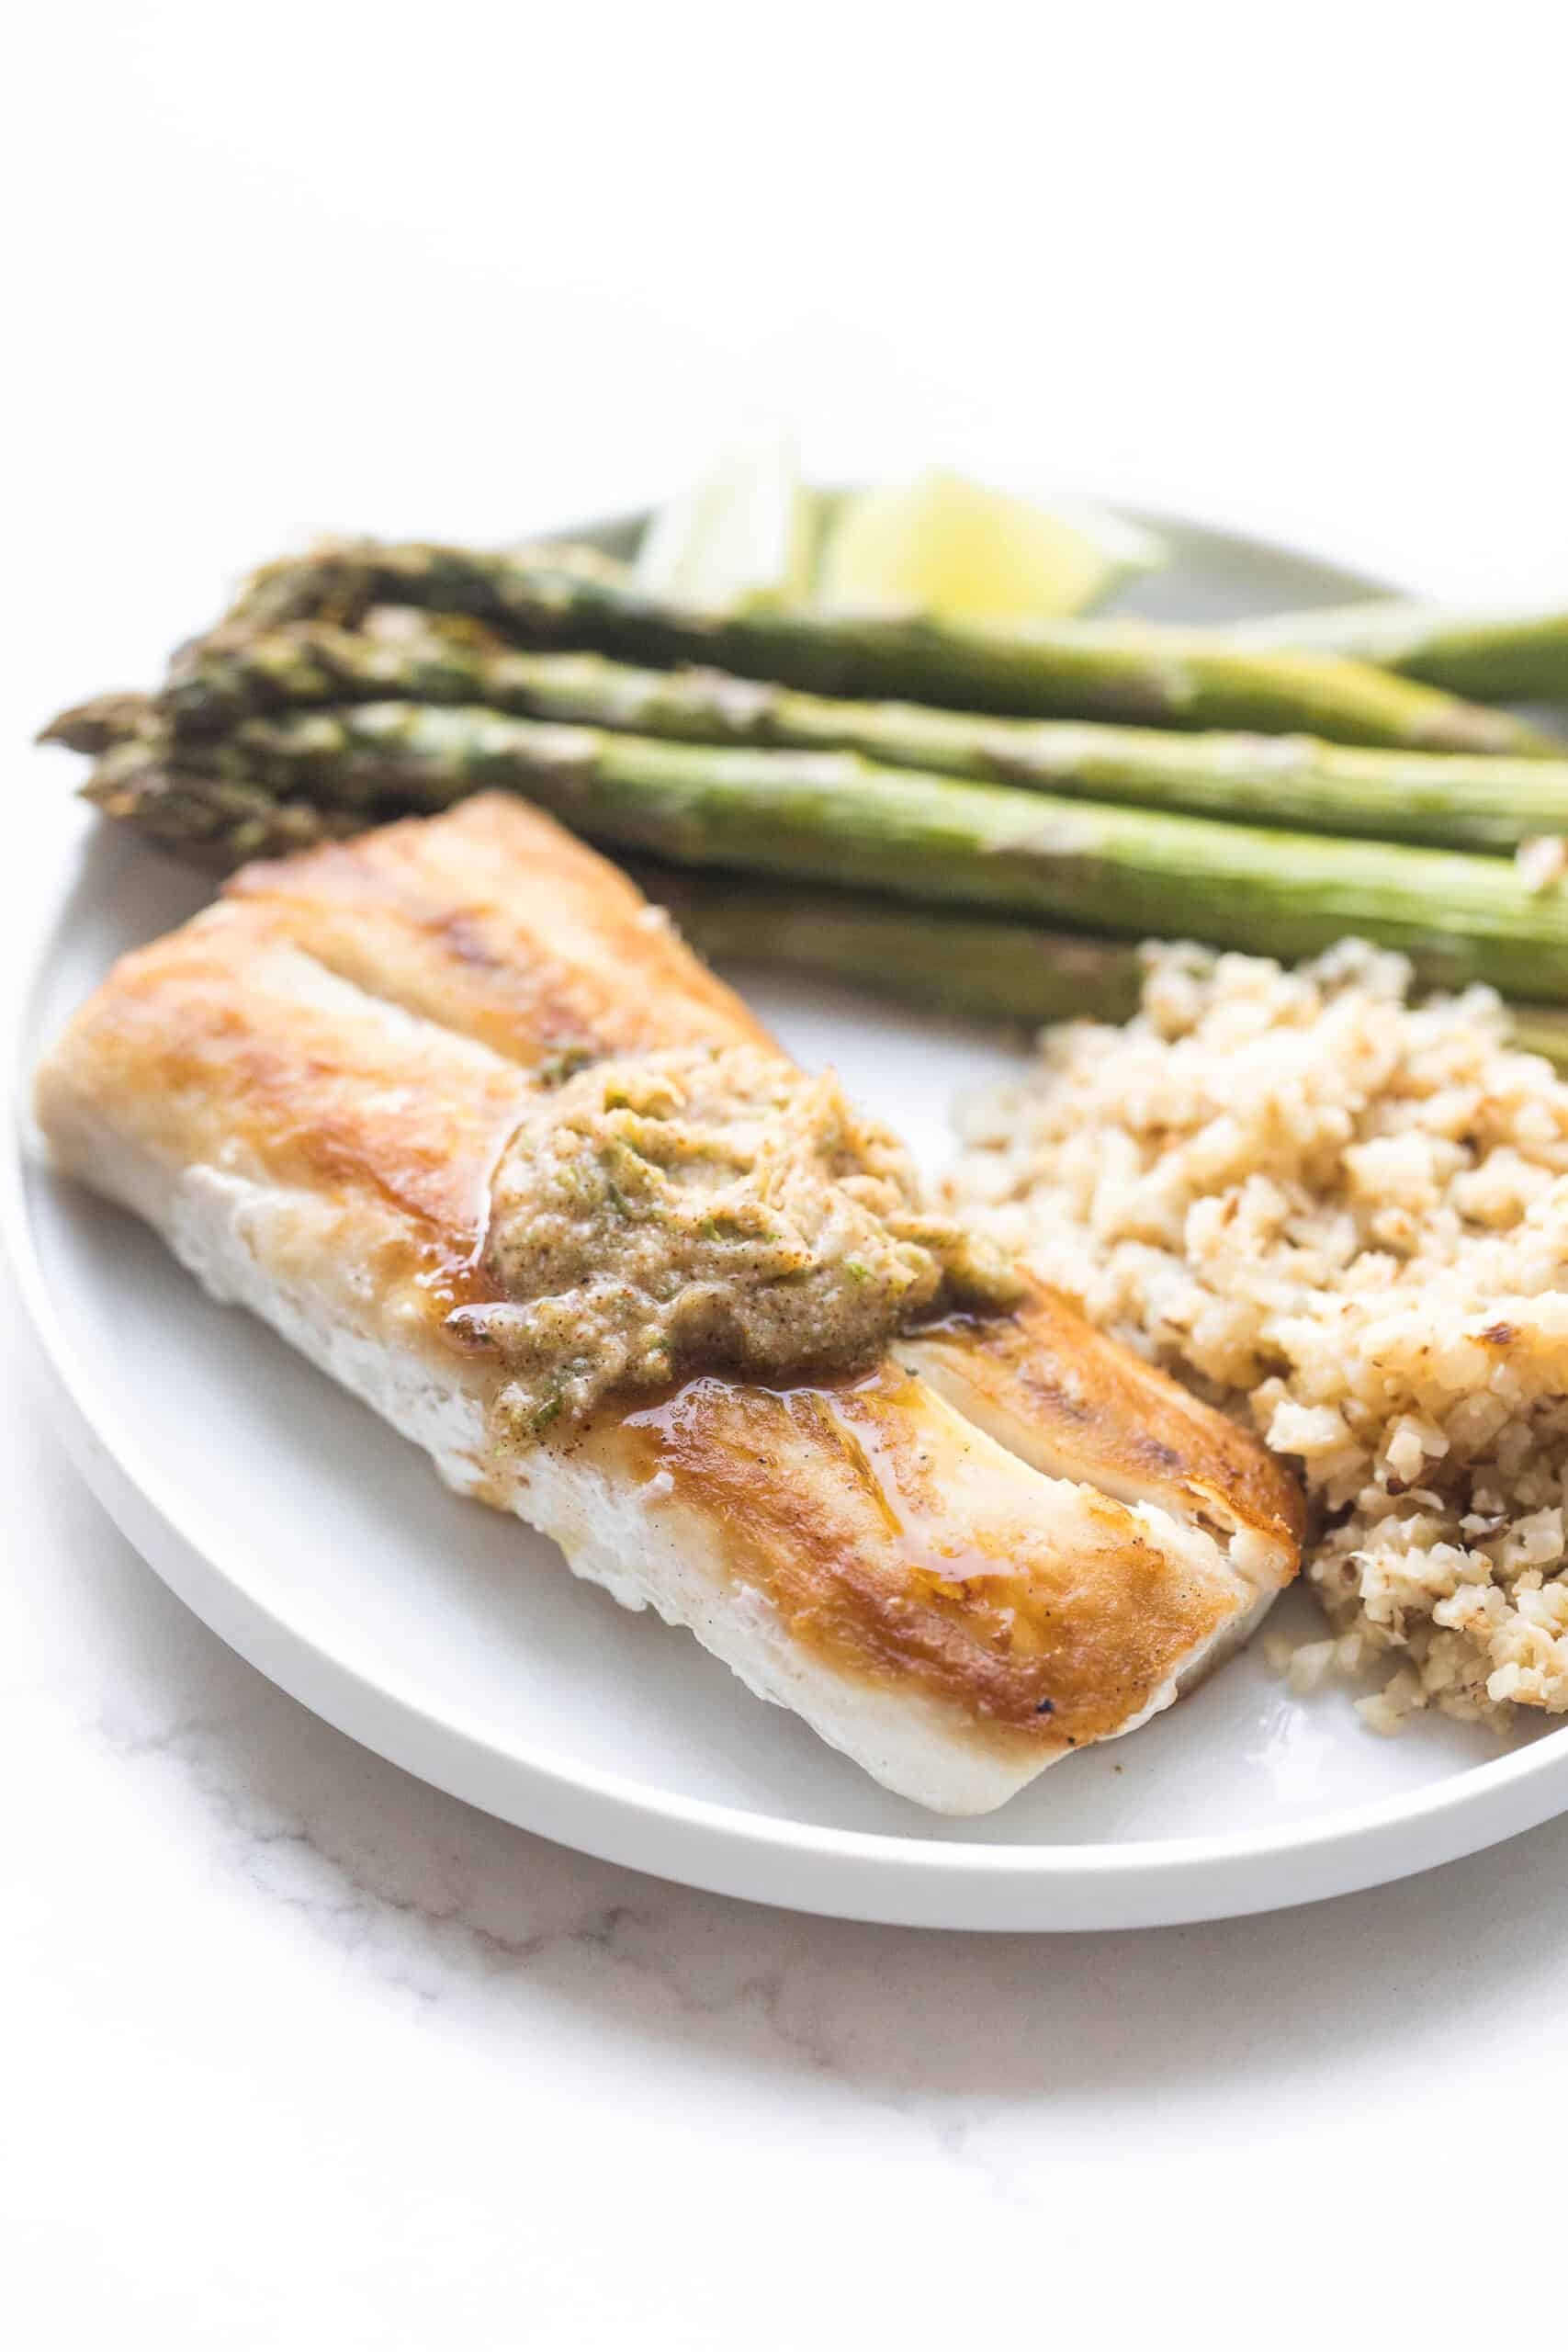 MAHI MAHI WITH CHILI LIME COMPOUND BUTTER WITH CAULIFLOWER RICE AND ASPARAGUS ON A WHITE PLATE AND BACKGROUND